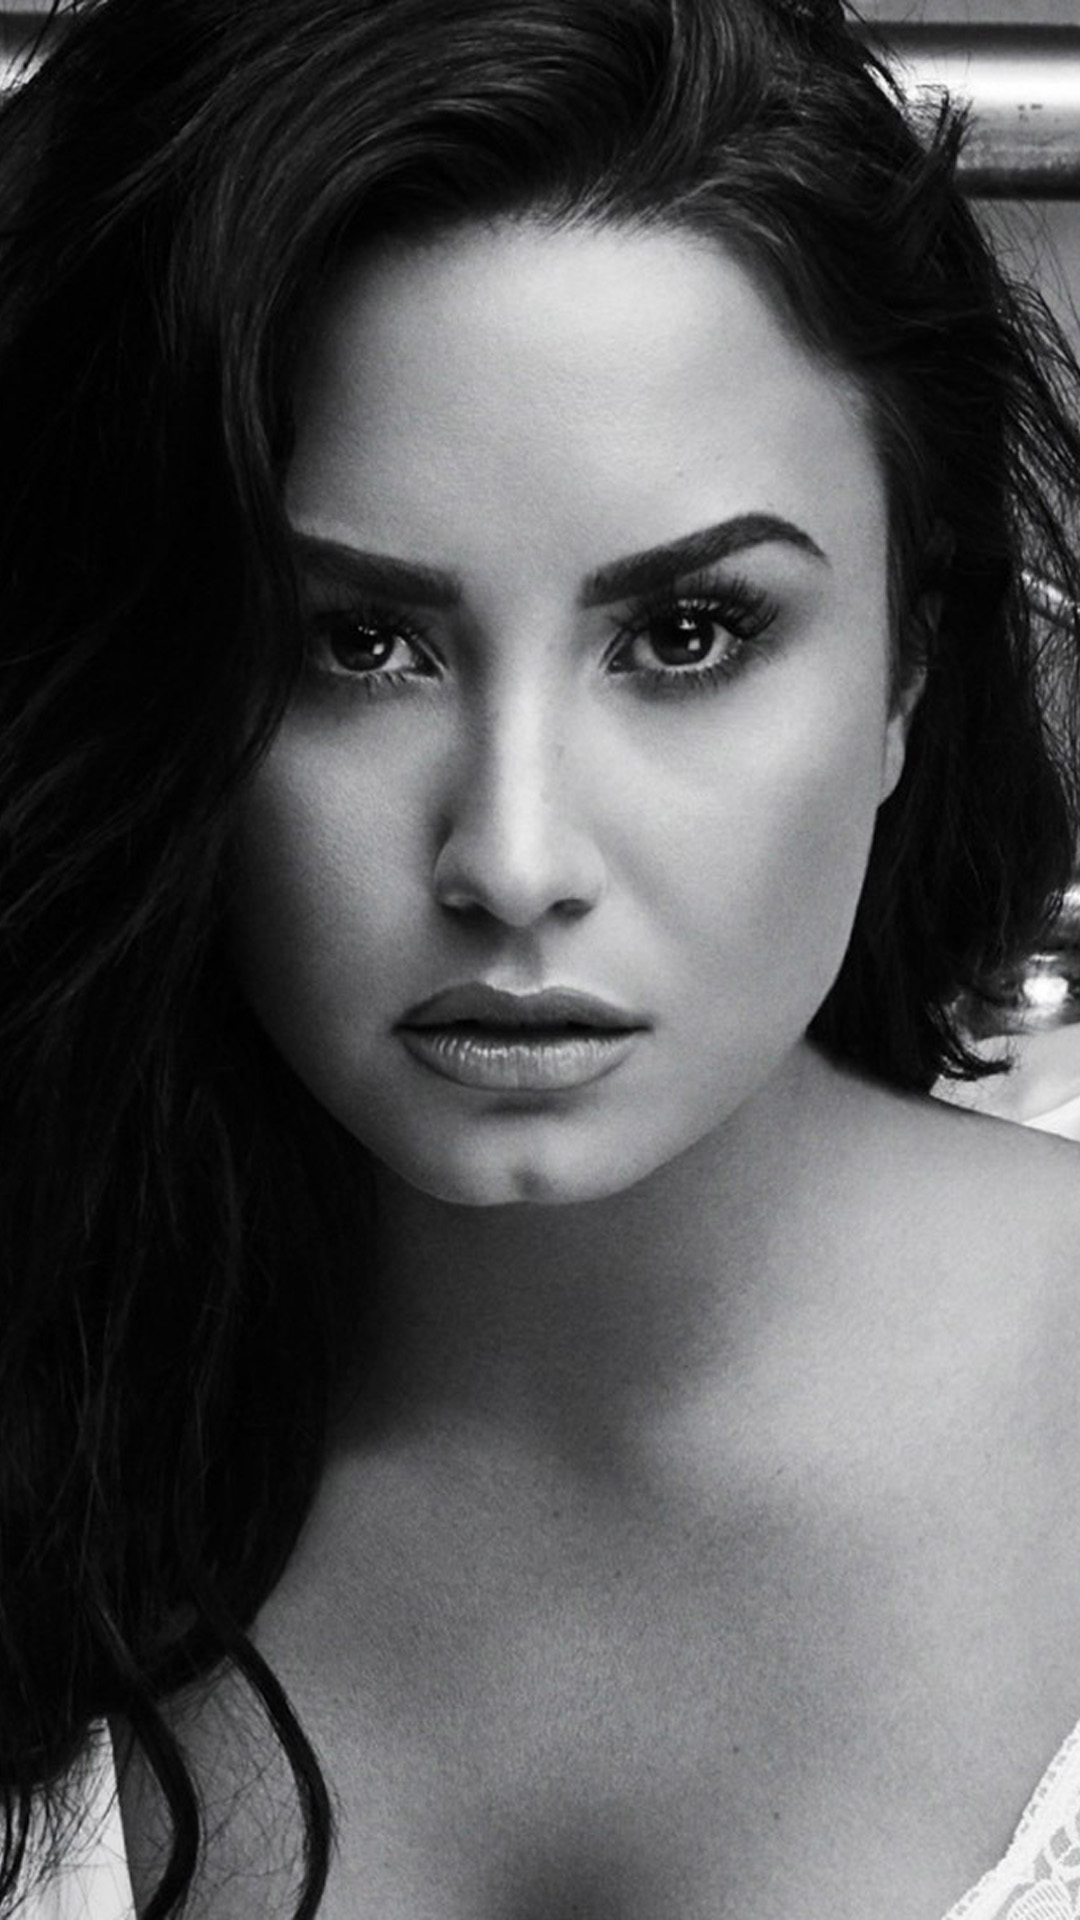 Demi Lovato Hot Black & White Photoshoot - Download Free ...